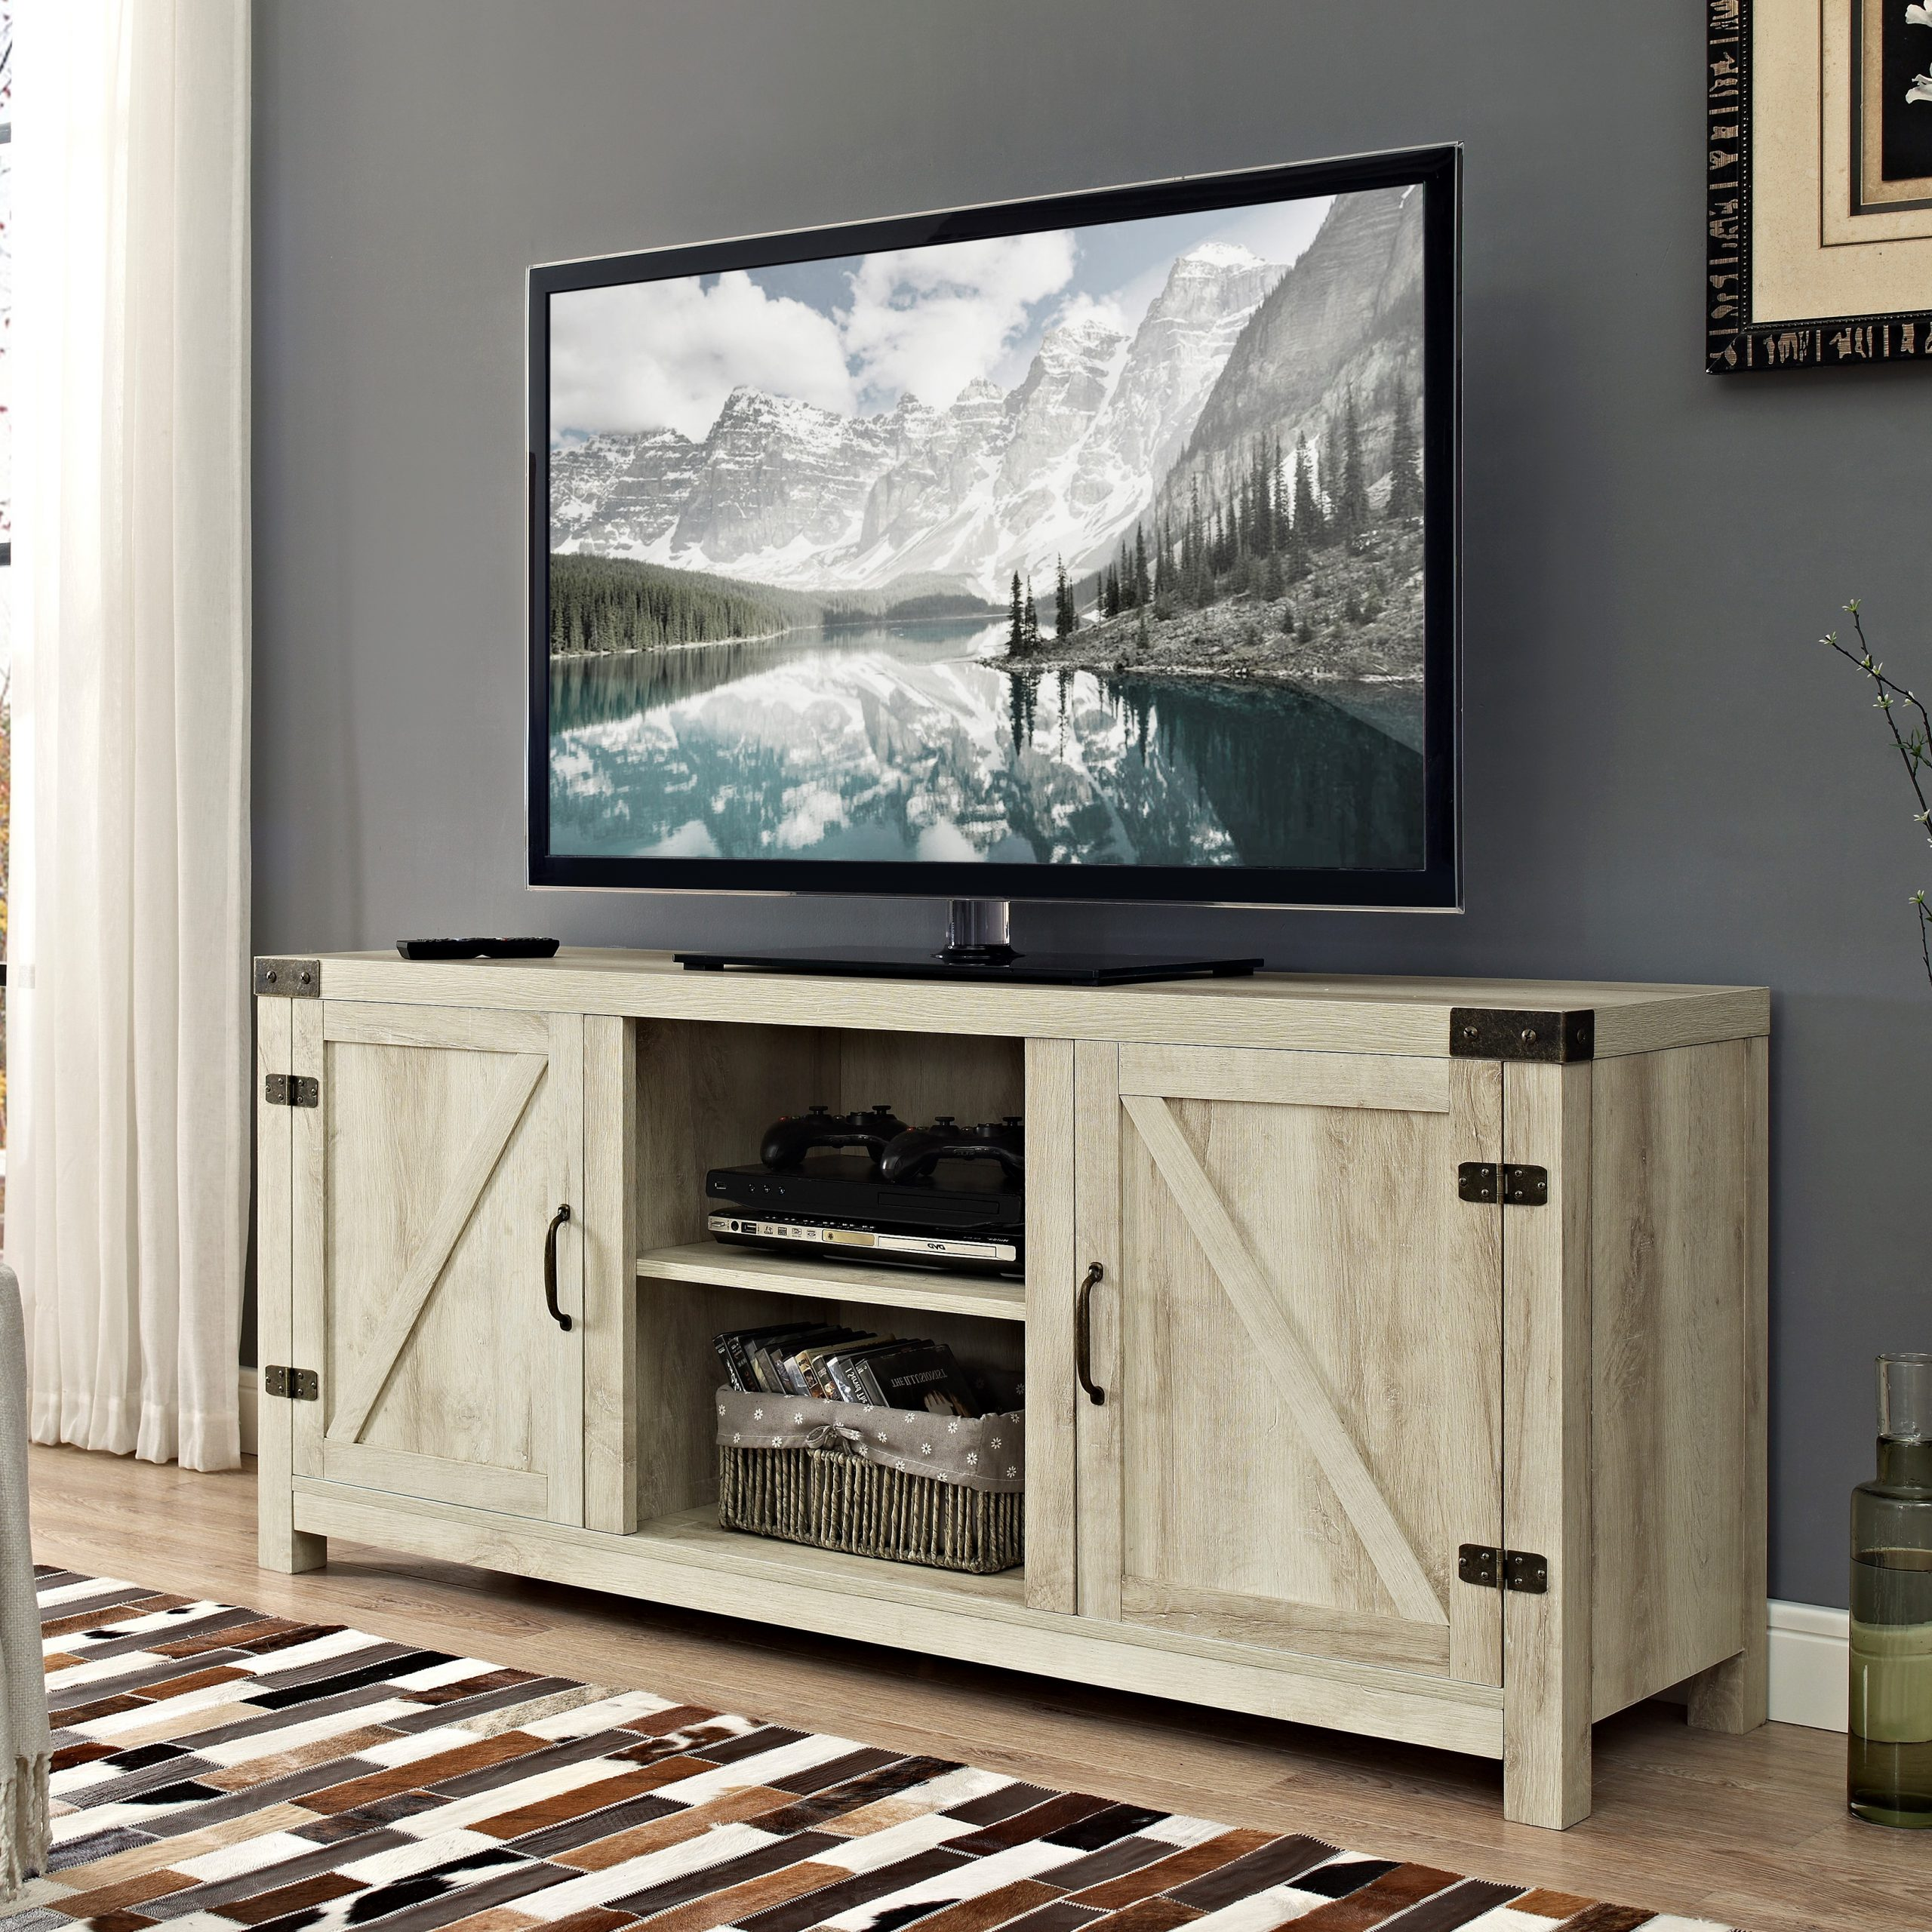 """Well Liked Woven Paths Modern Farmhouse Barn Door Tv Stand For Tvs Up With Regard To Brigner Tv Stands For Tvs Up To 65"""" (View 4 of 25)"""